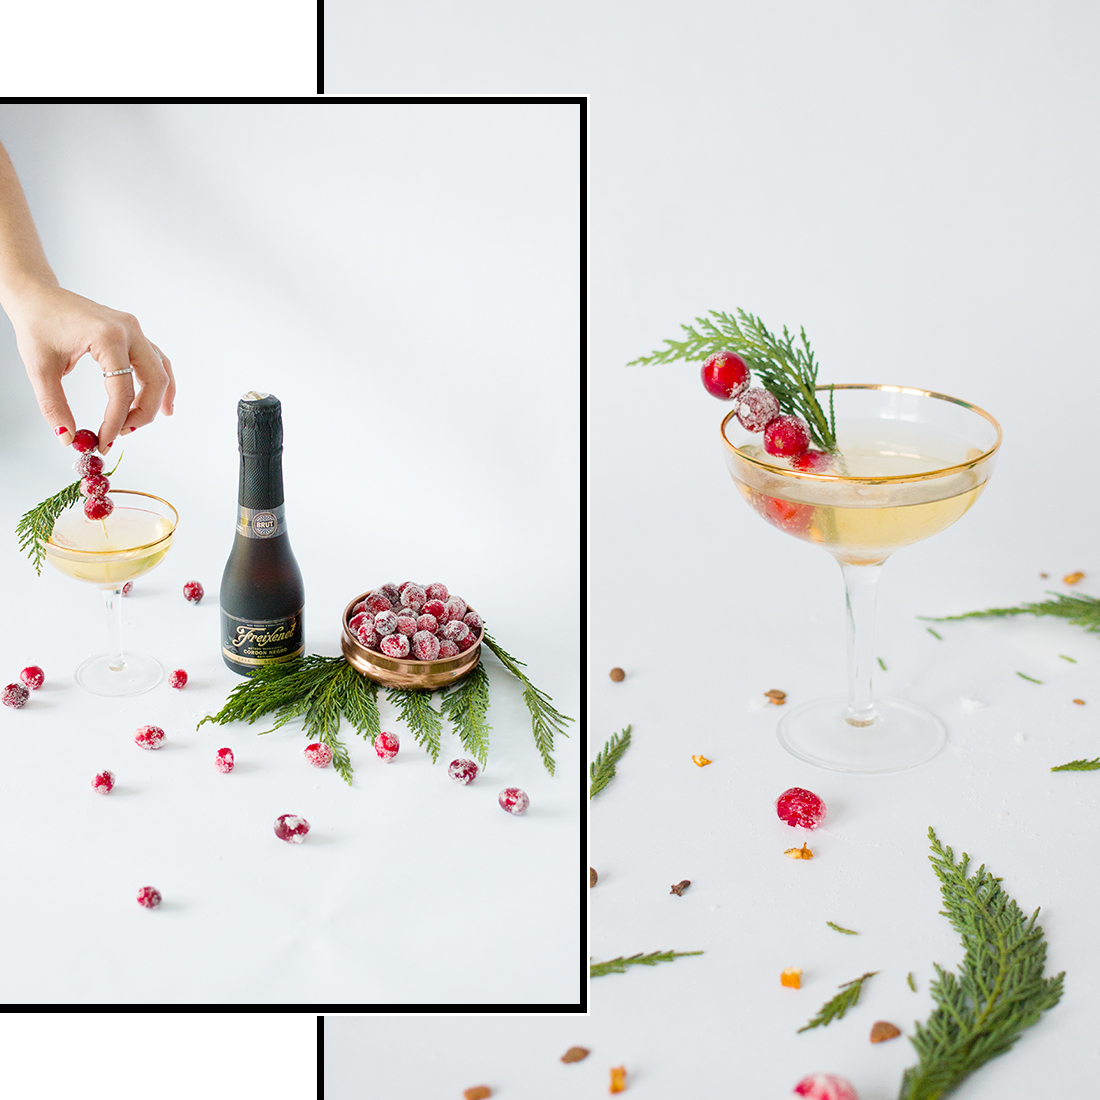 Try This Festive Cocktail Recipe